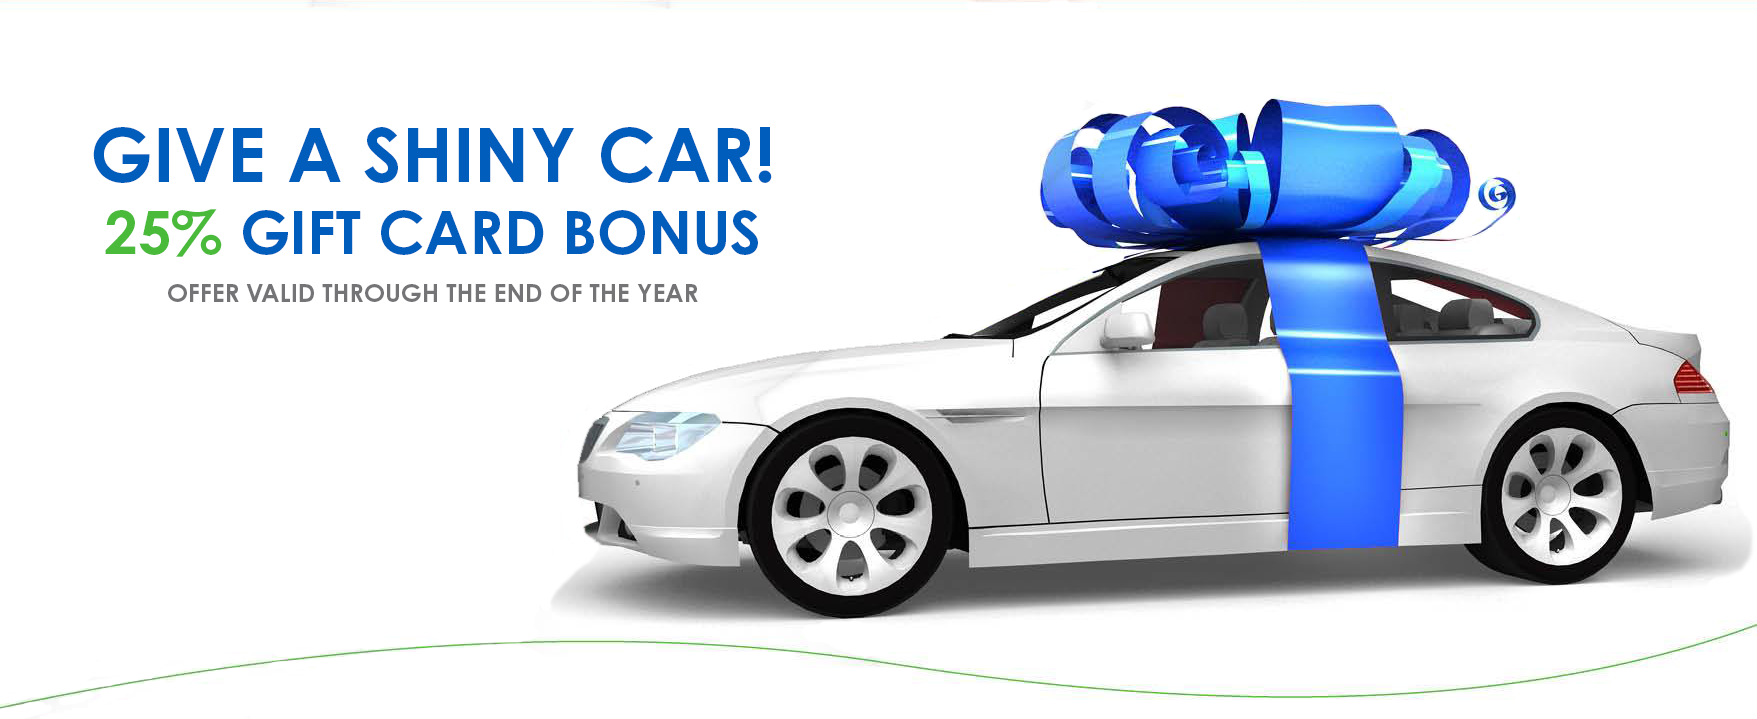 25% bonus ad through end of year 2018 website.png